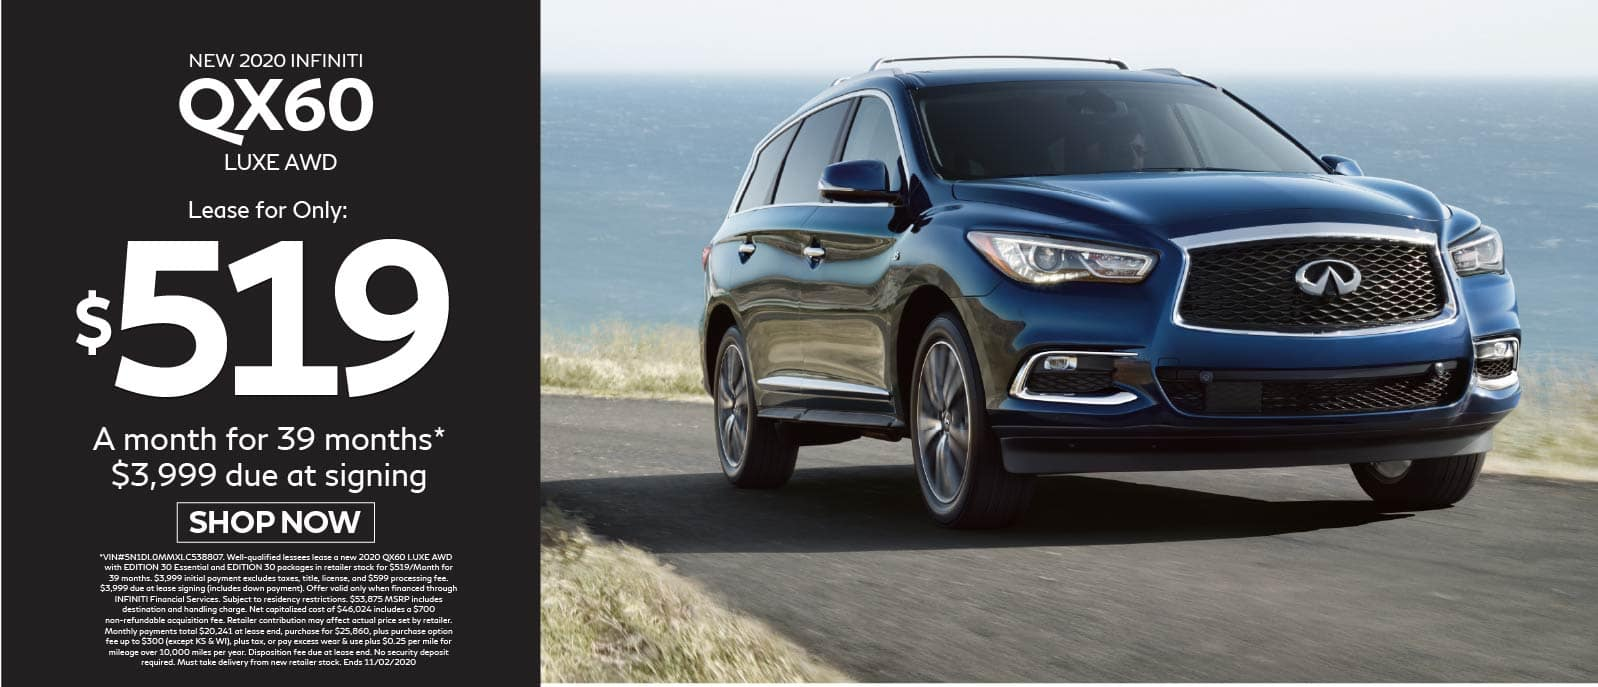 2020 INFINITI QX60 Lease for $519 a month for 39 months $3999 due at signing. Shop Now.